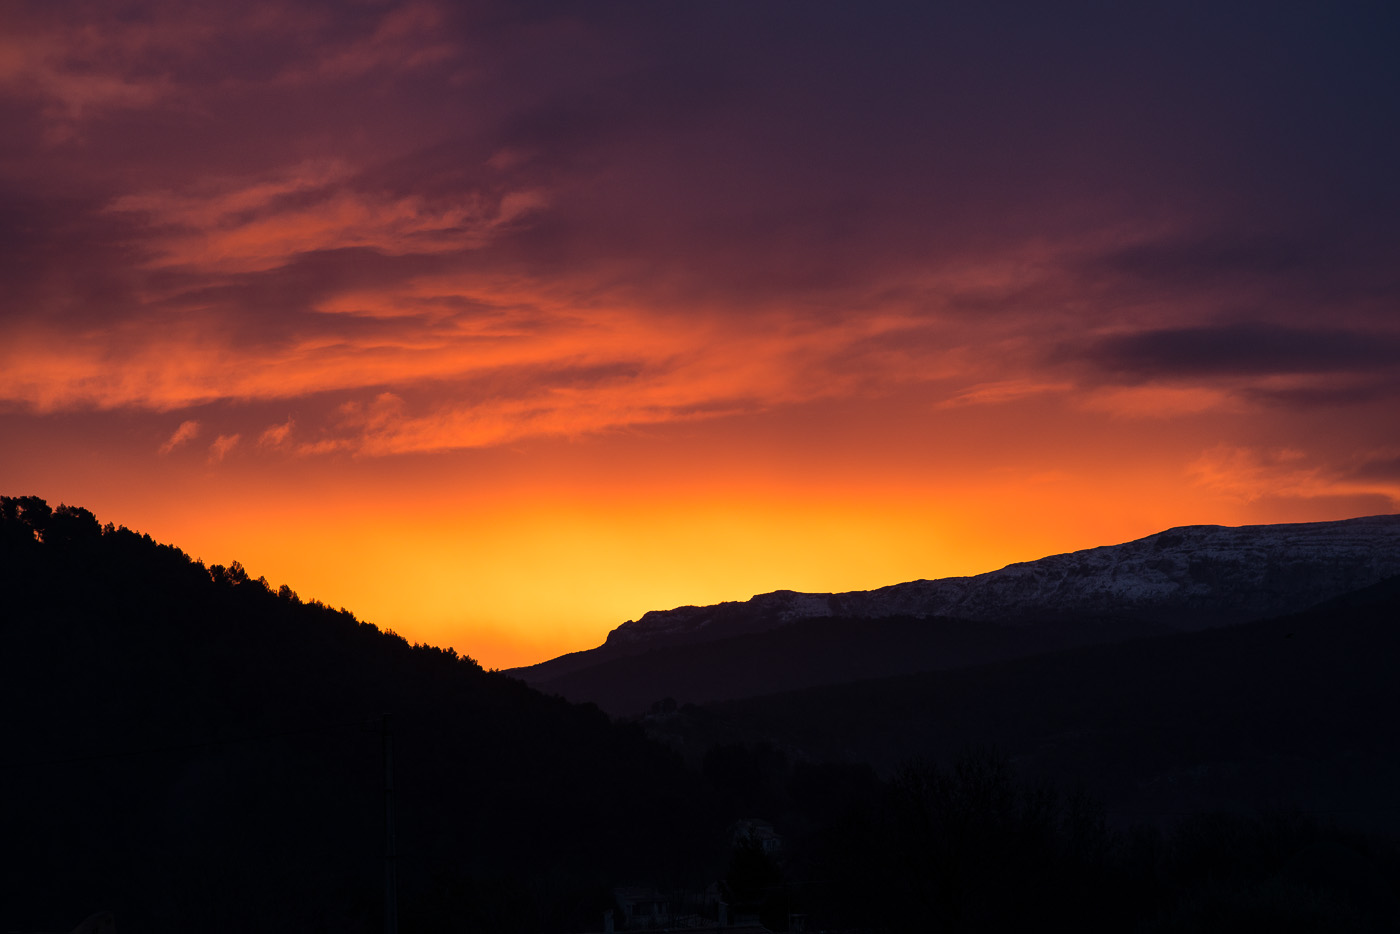 A red sunrise over the hills of provence on a snowy winter day